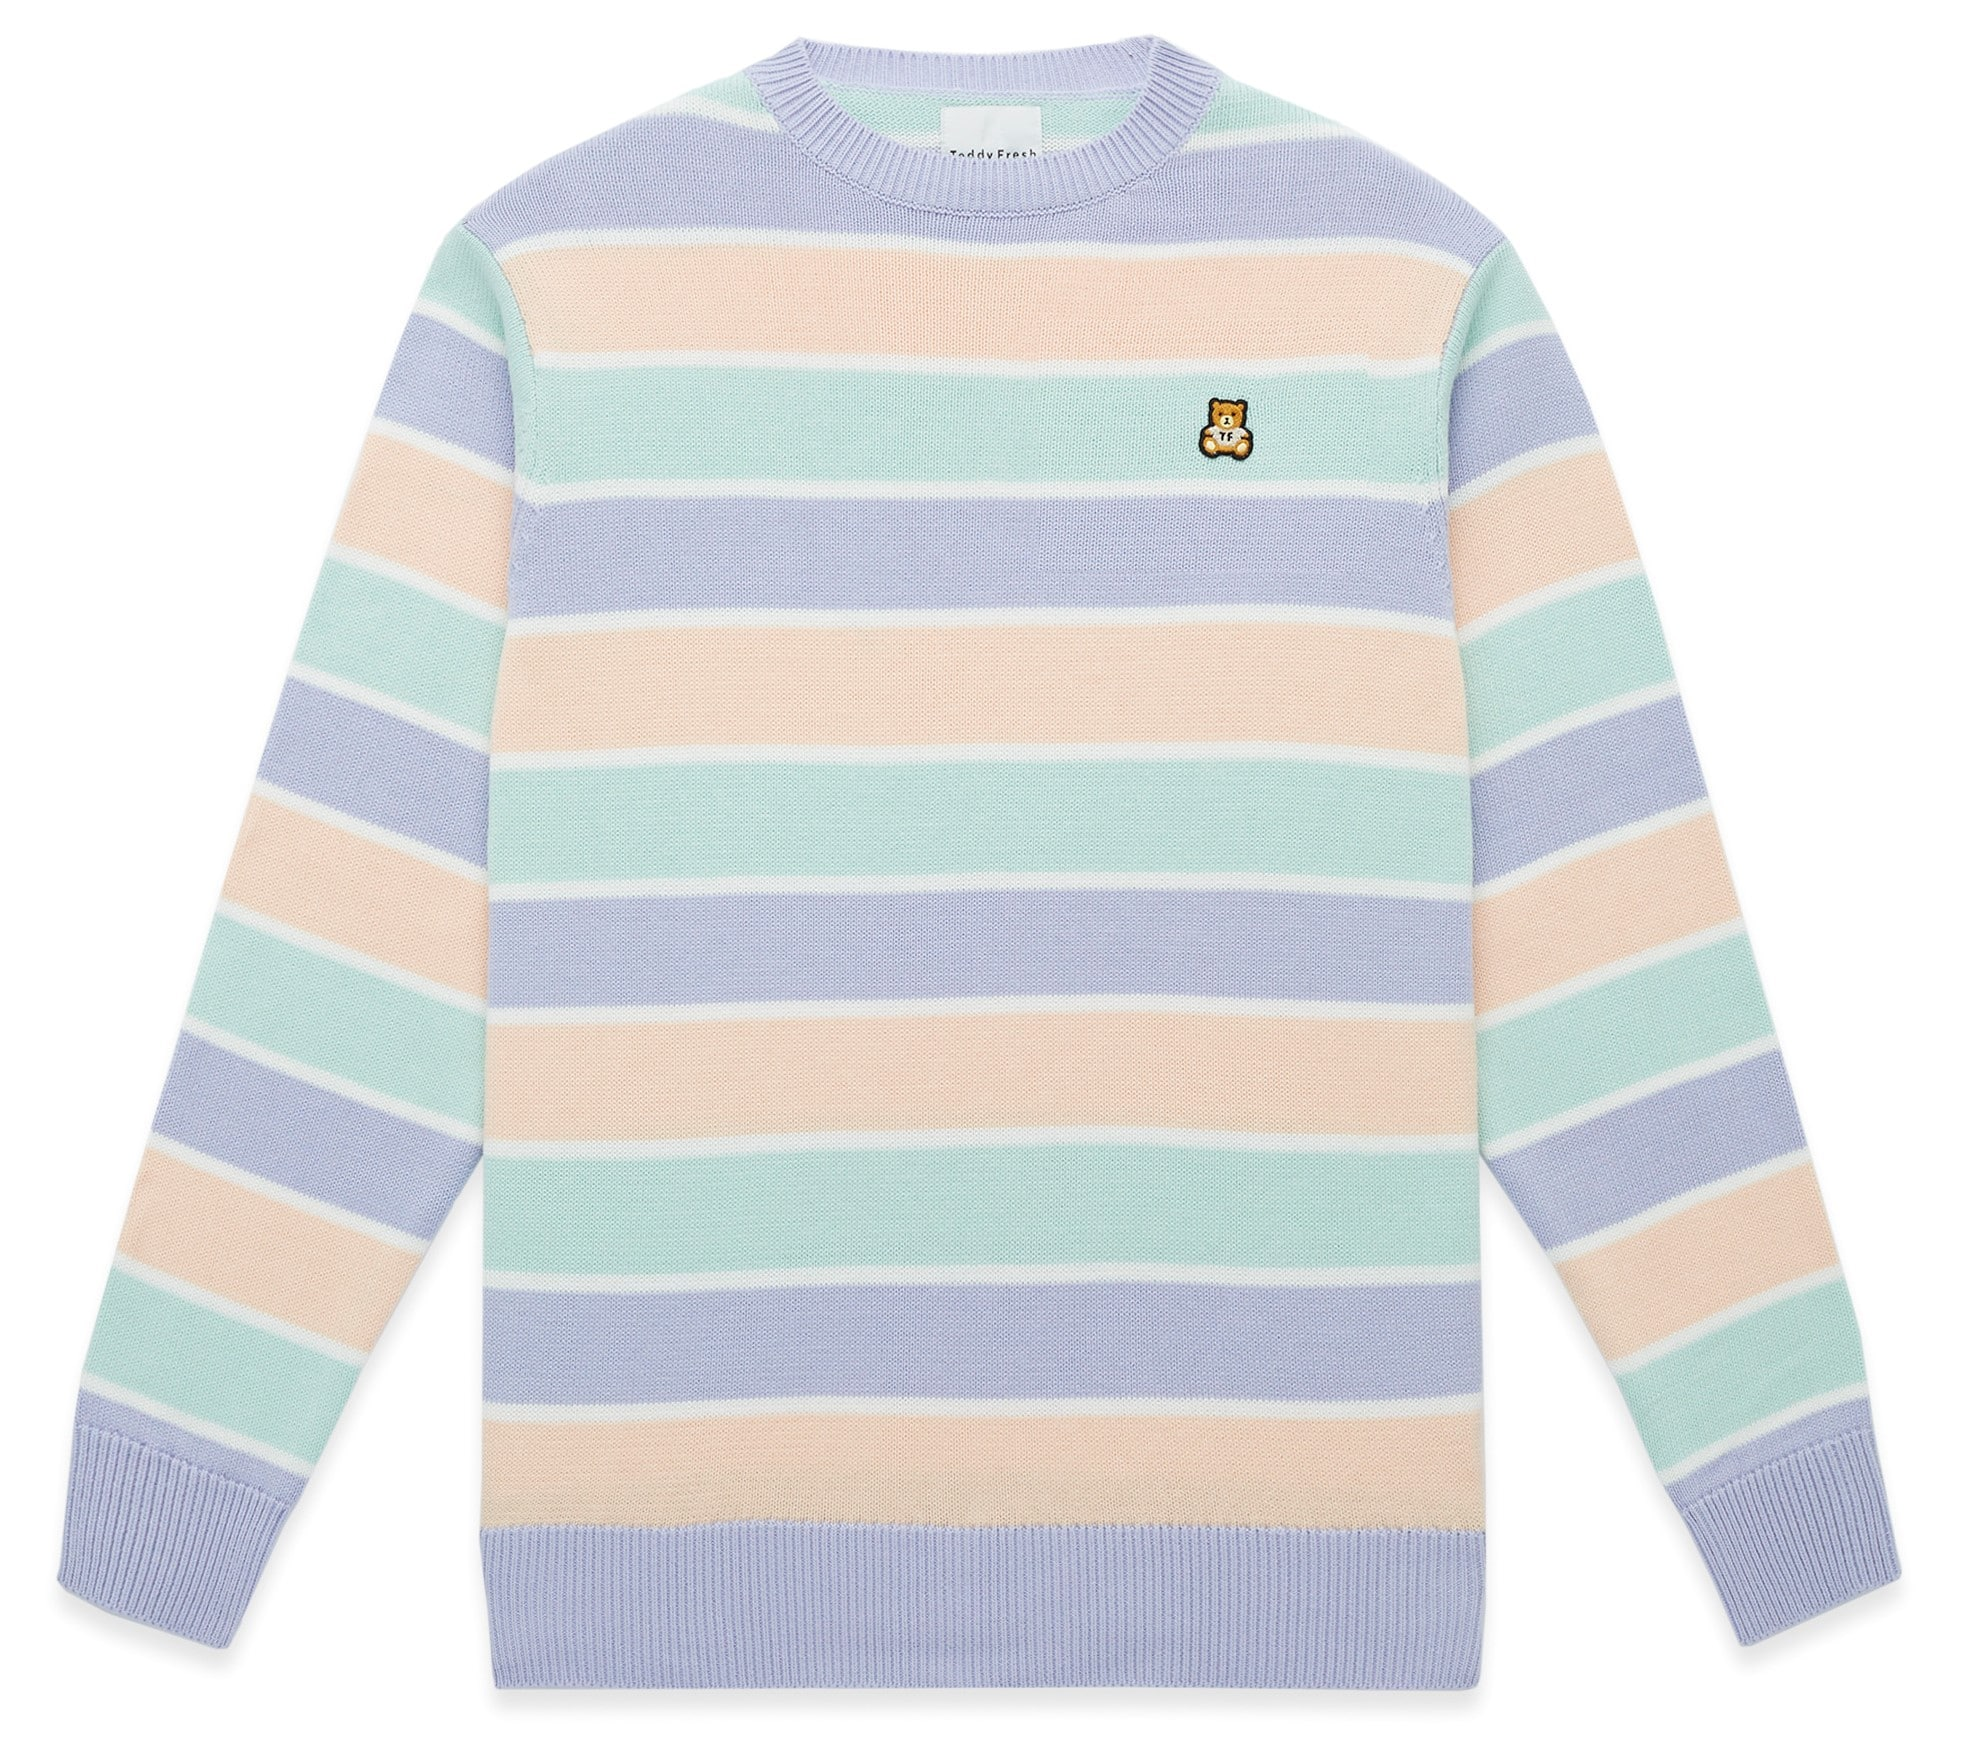 Teddy Fresh doubles down on pastel-colored outerwear for its February collection 12